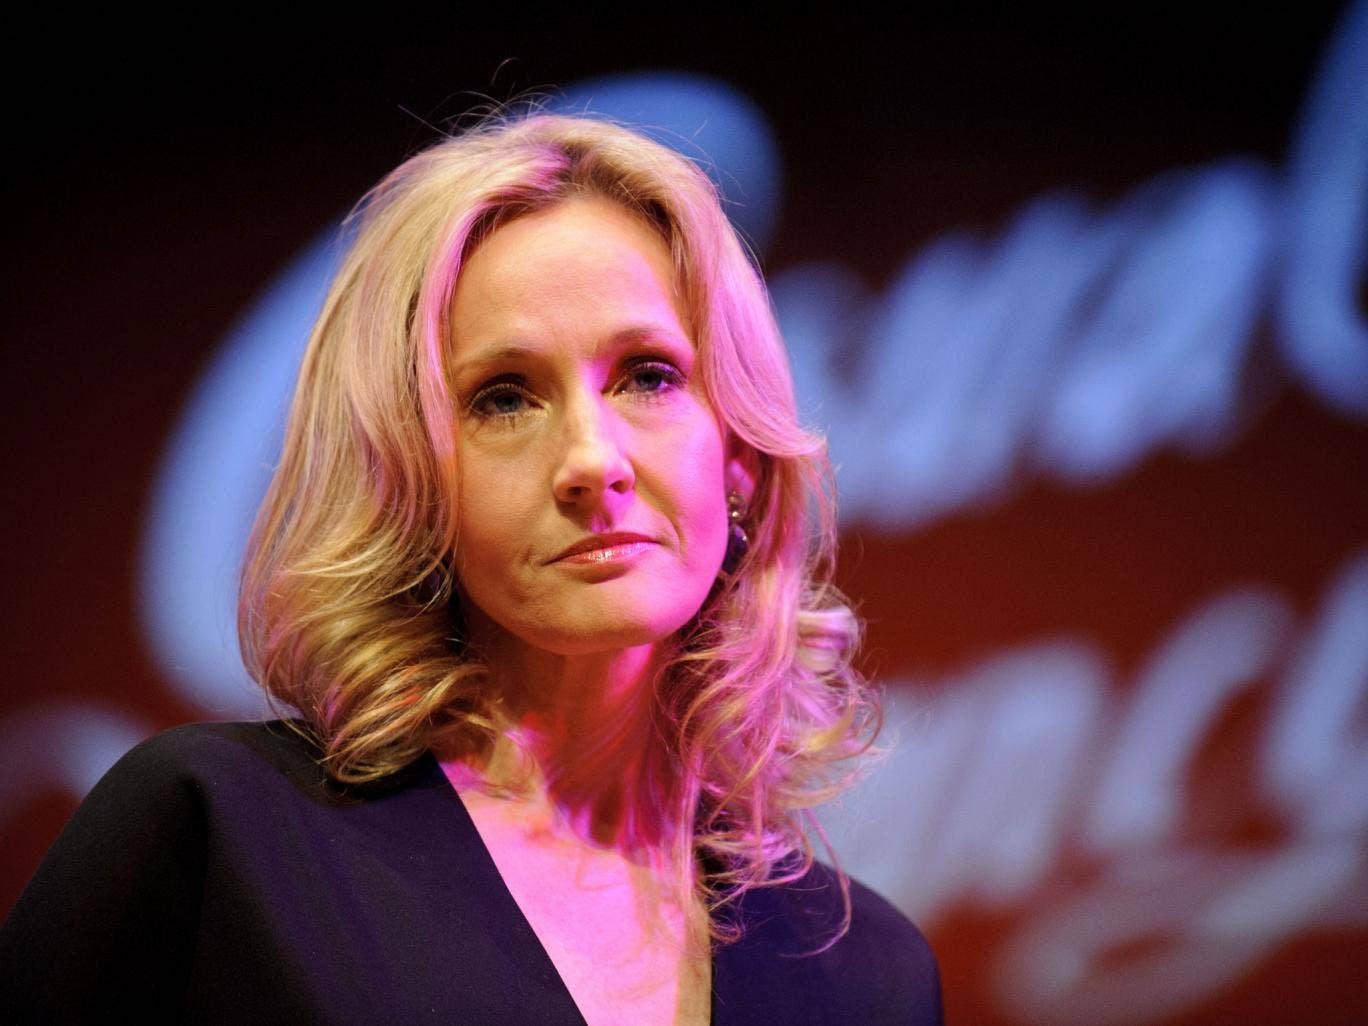 JK Rowling's Casual Vacancy did not qualify for a list of Scotland's 50 best books